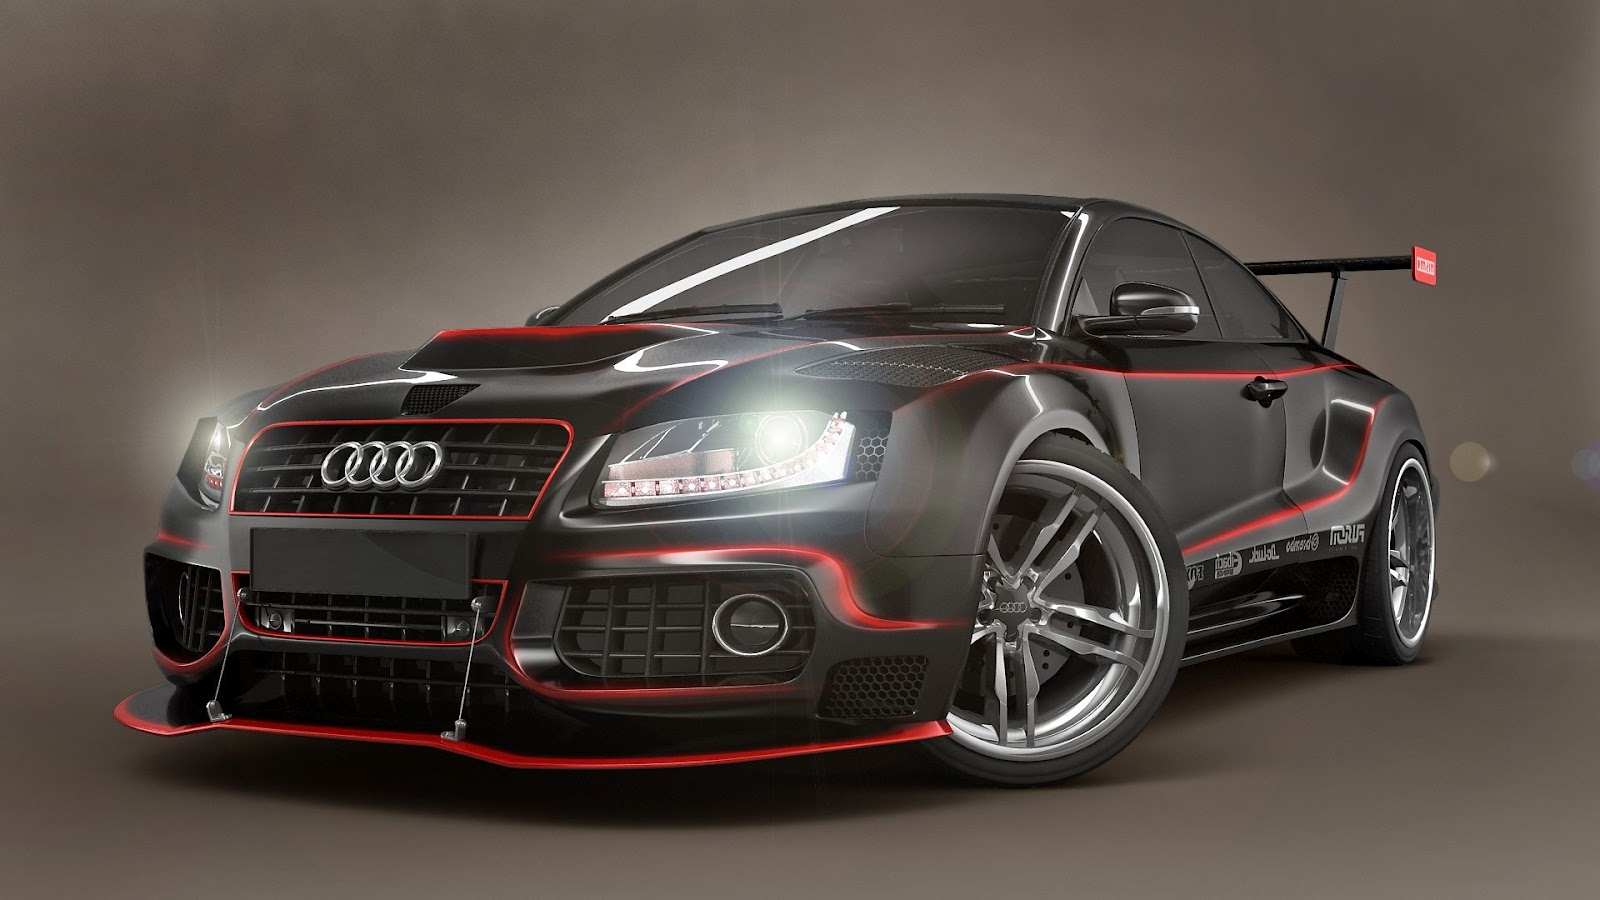 awesome car backgrounds 18880 1600x900 px hdwallsourcecom